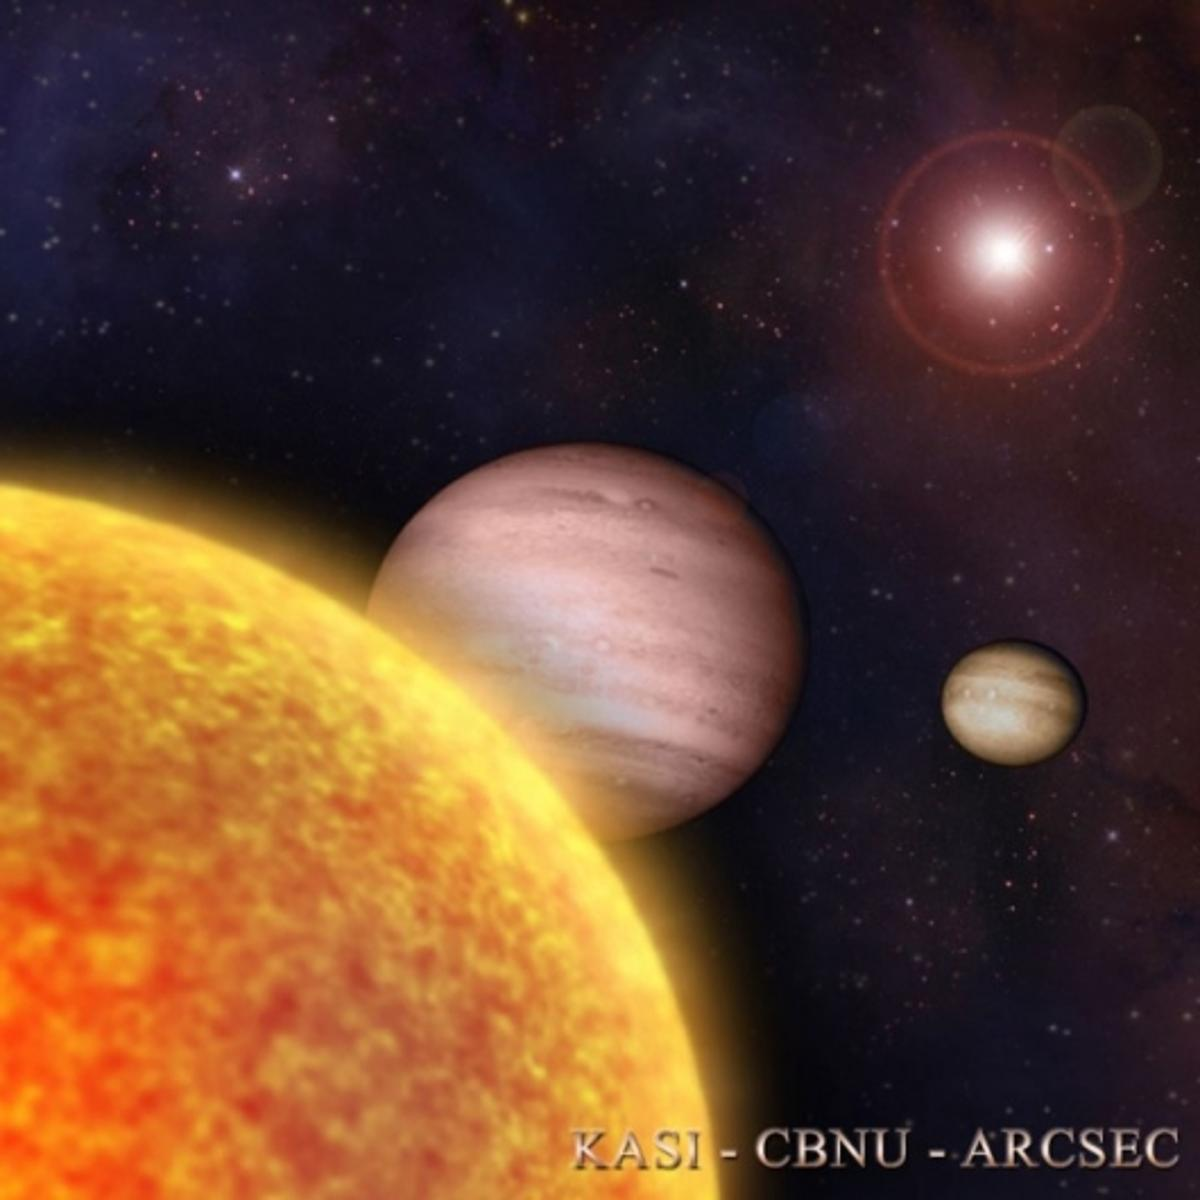 Artist's impression of the newly detected planets Photo courtesy KASI, CBNU, and ARCSEC